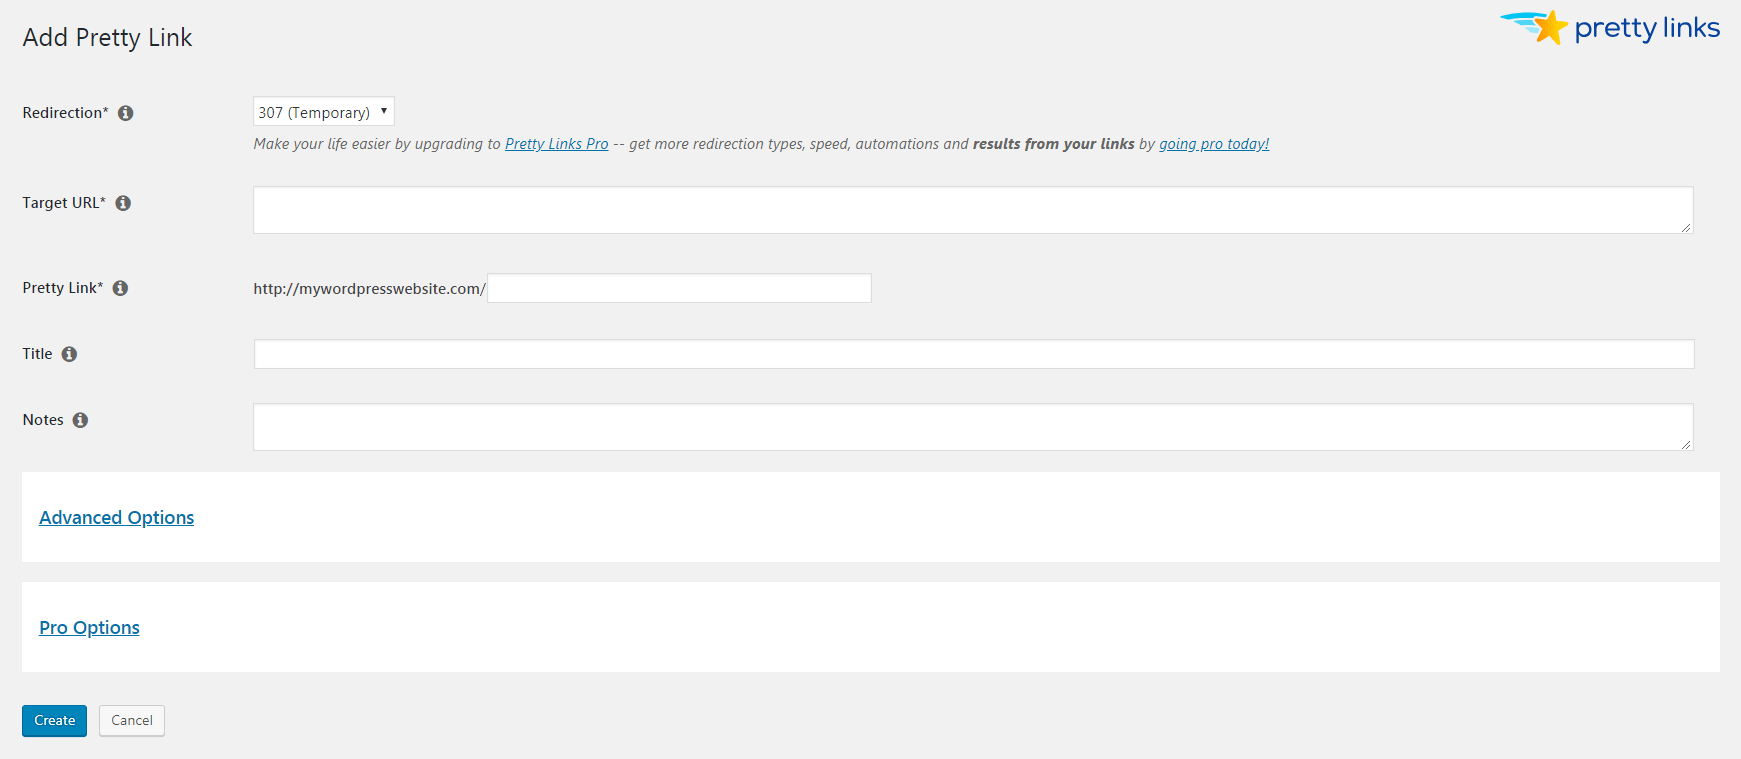 Adding a new Pretty Link for link optimization